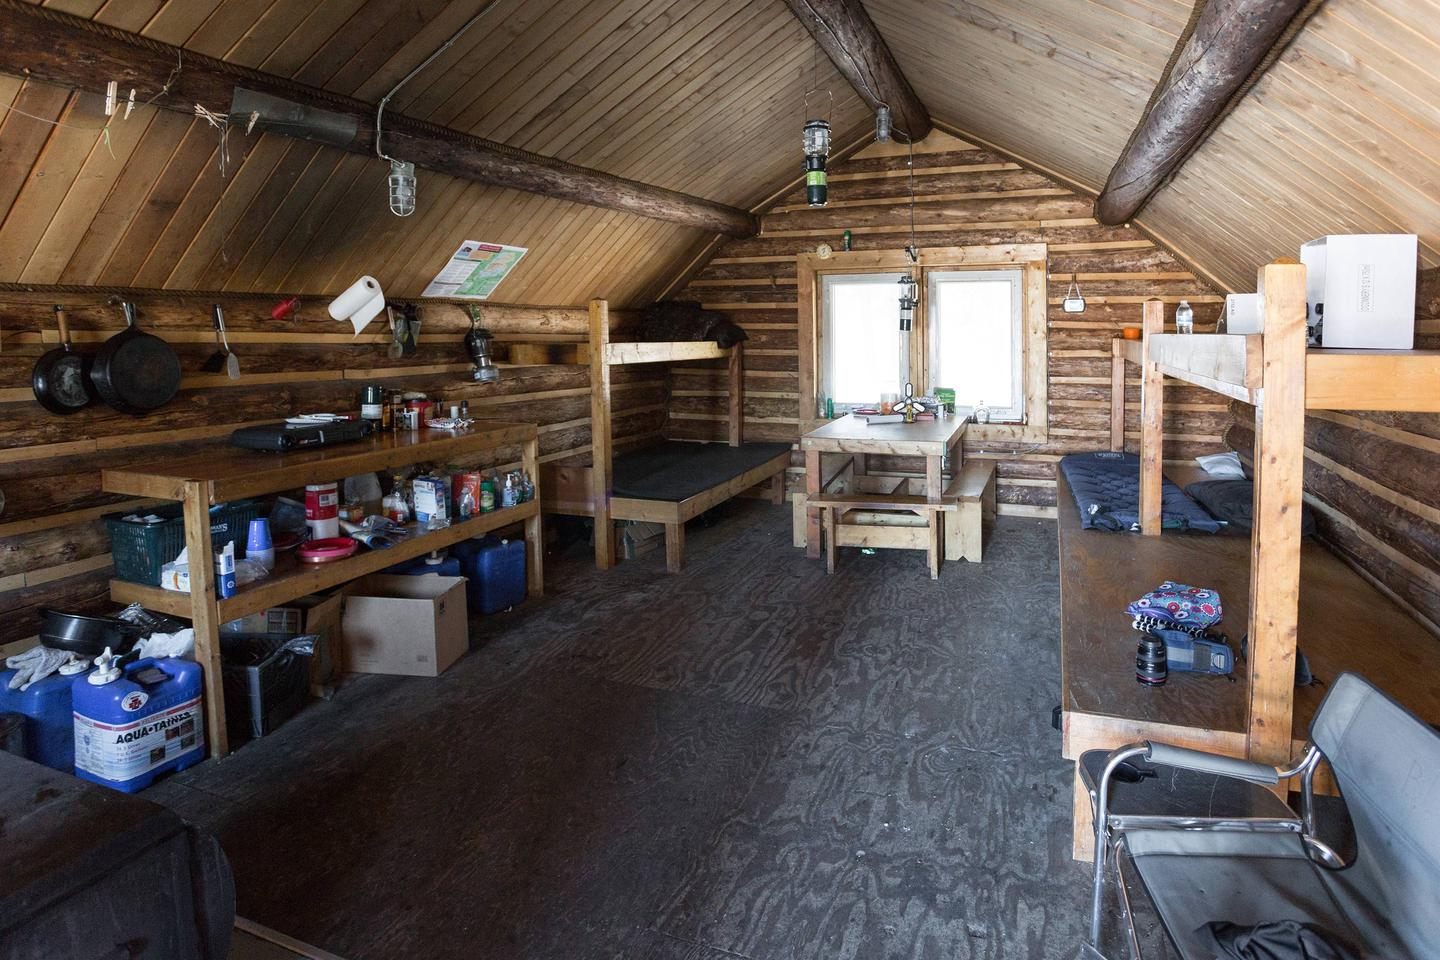 Bunks, table, benches and kitchen counter inside a log cabinSpacious interior of Richard's Cabin